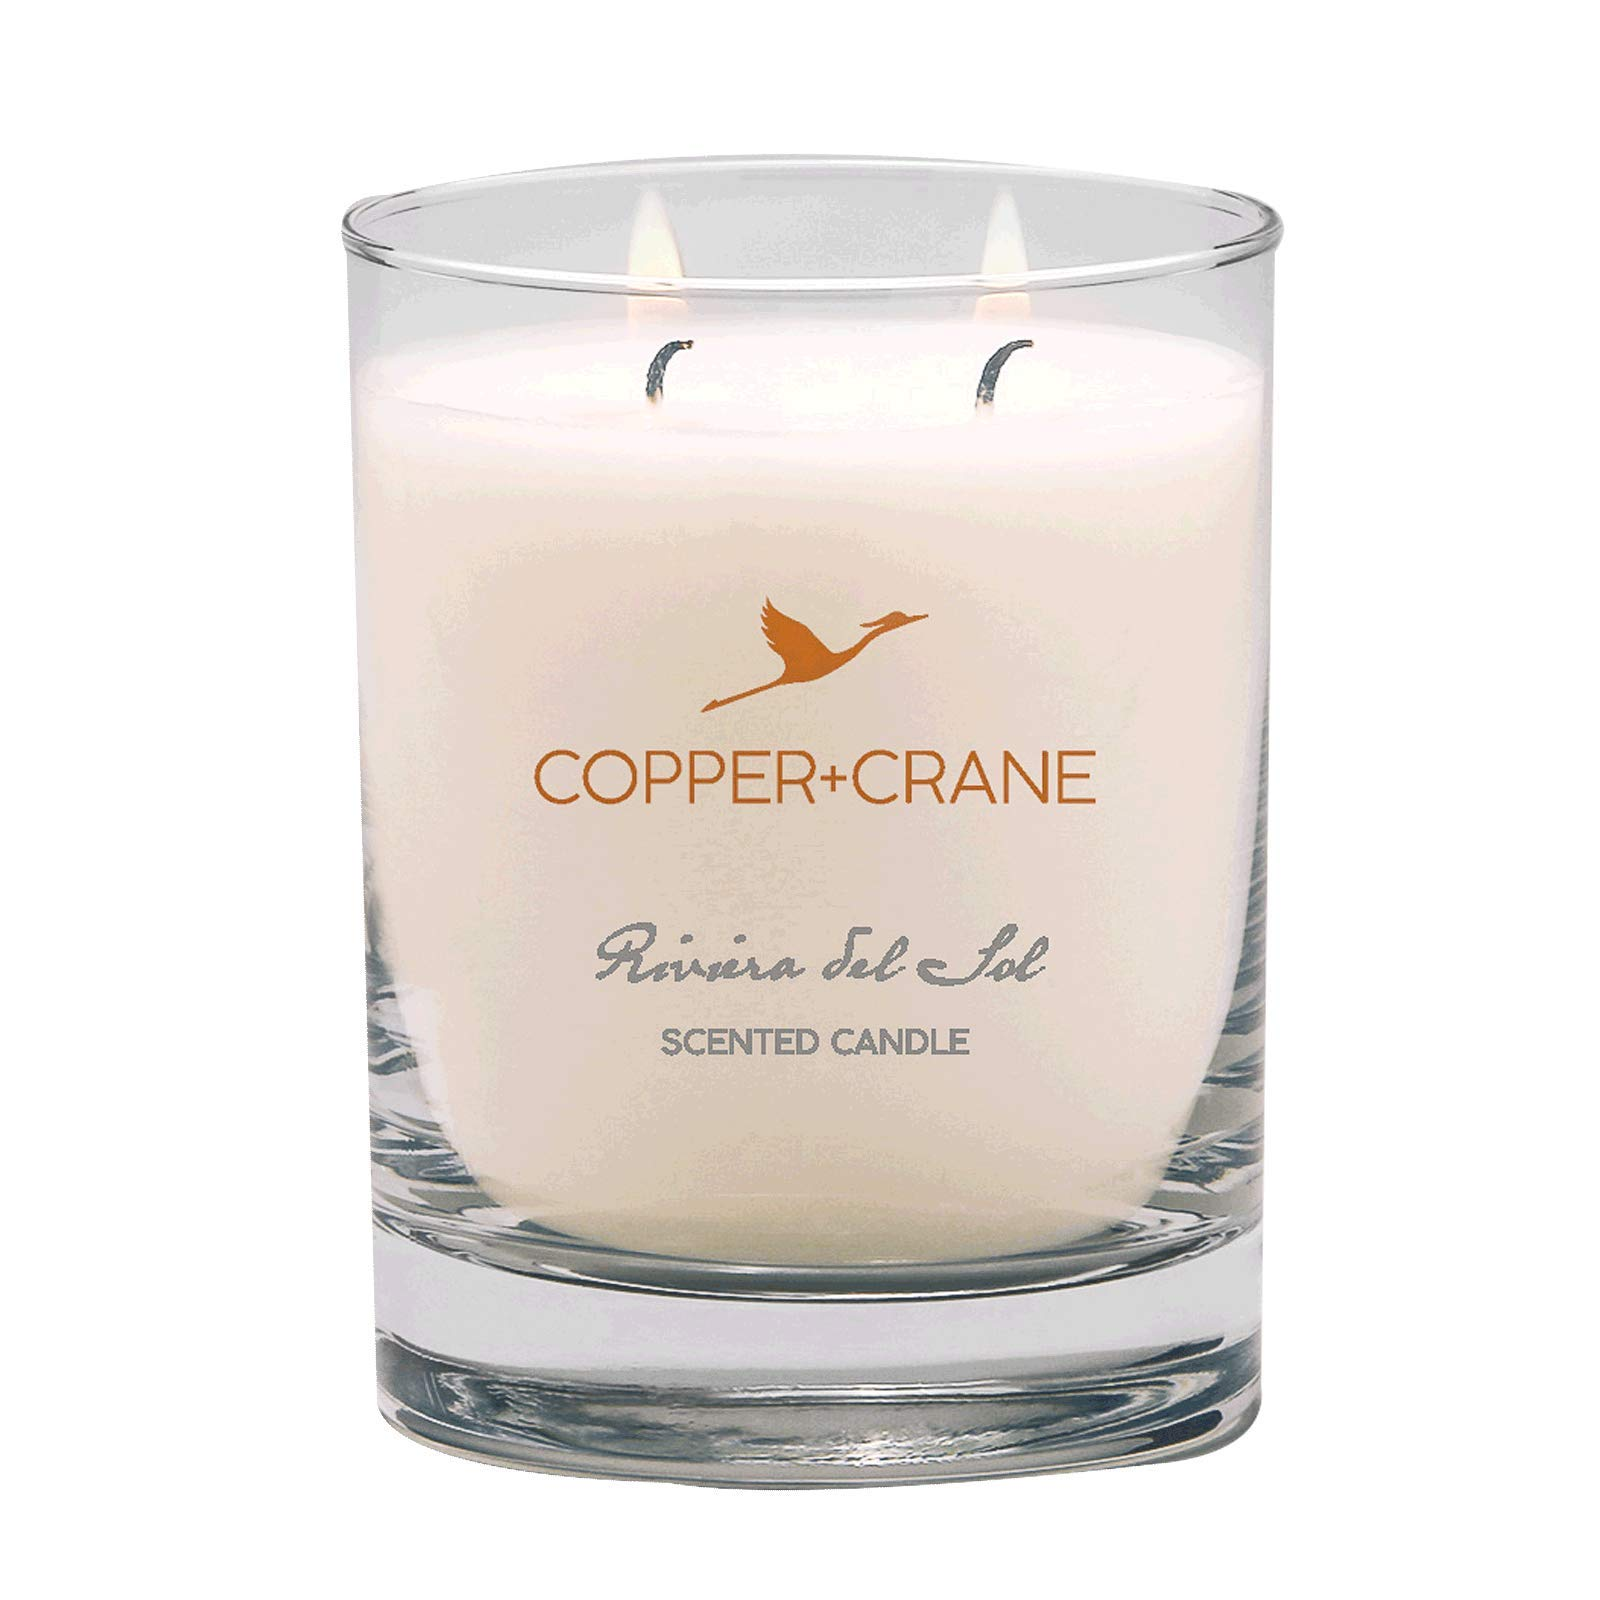 COPPER+CRANE Luxury Scented Candle   Vanilla and Floral Bouquet   long lasting up to 45 hours burn time   hand-placed double wick   9.5 oz.